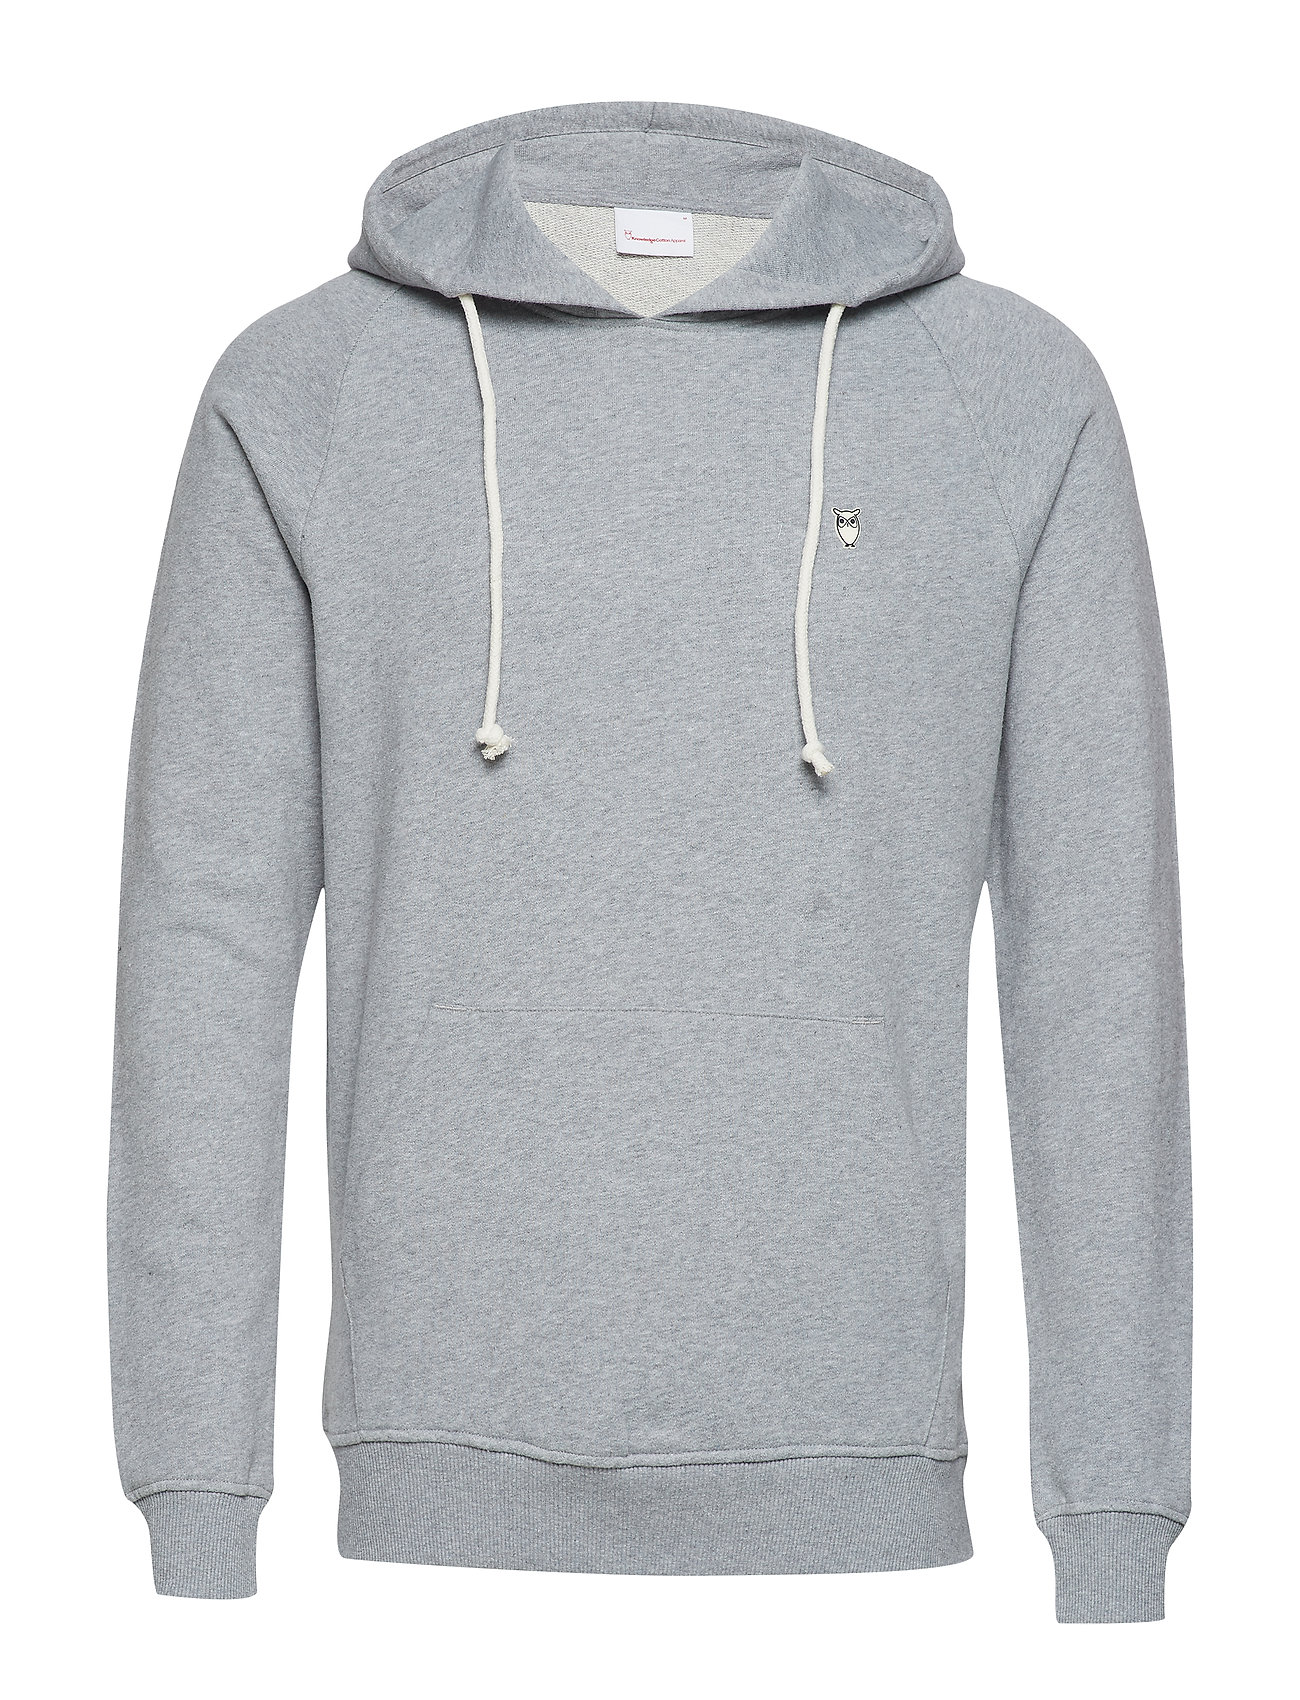 Knowledge Cotton Apparel ELM small owl hoodie sweat - GOTS/V - GREY MELANGE